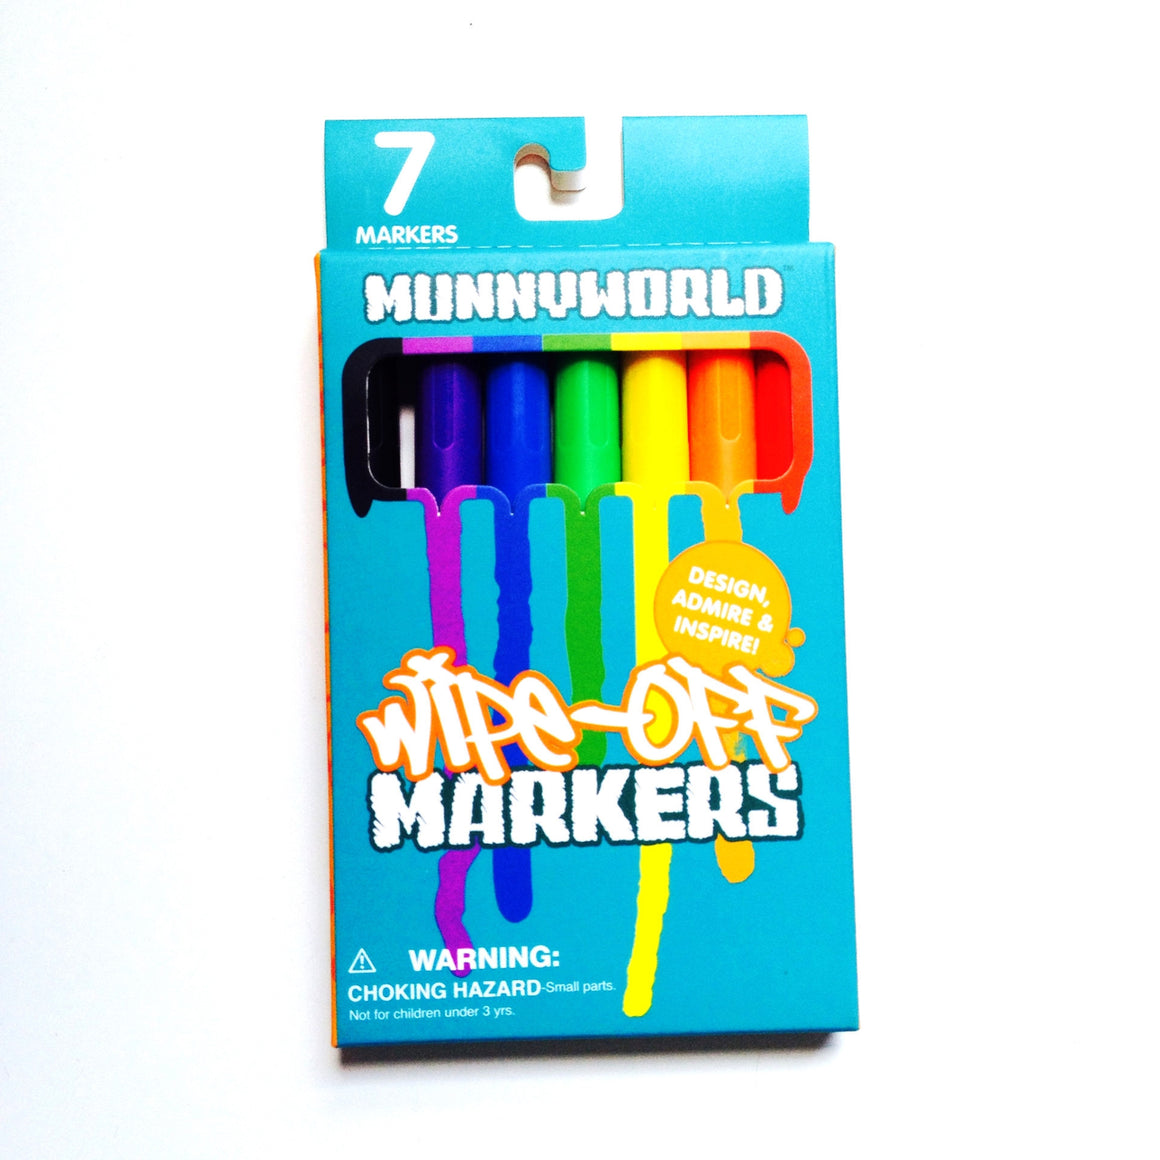 Munny World Wipe Off Markers by kidrobot - Mindzai